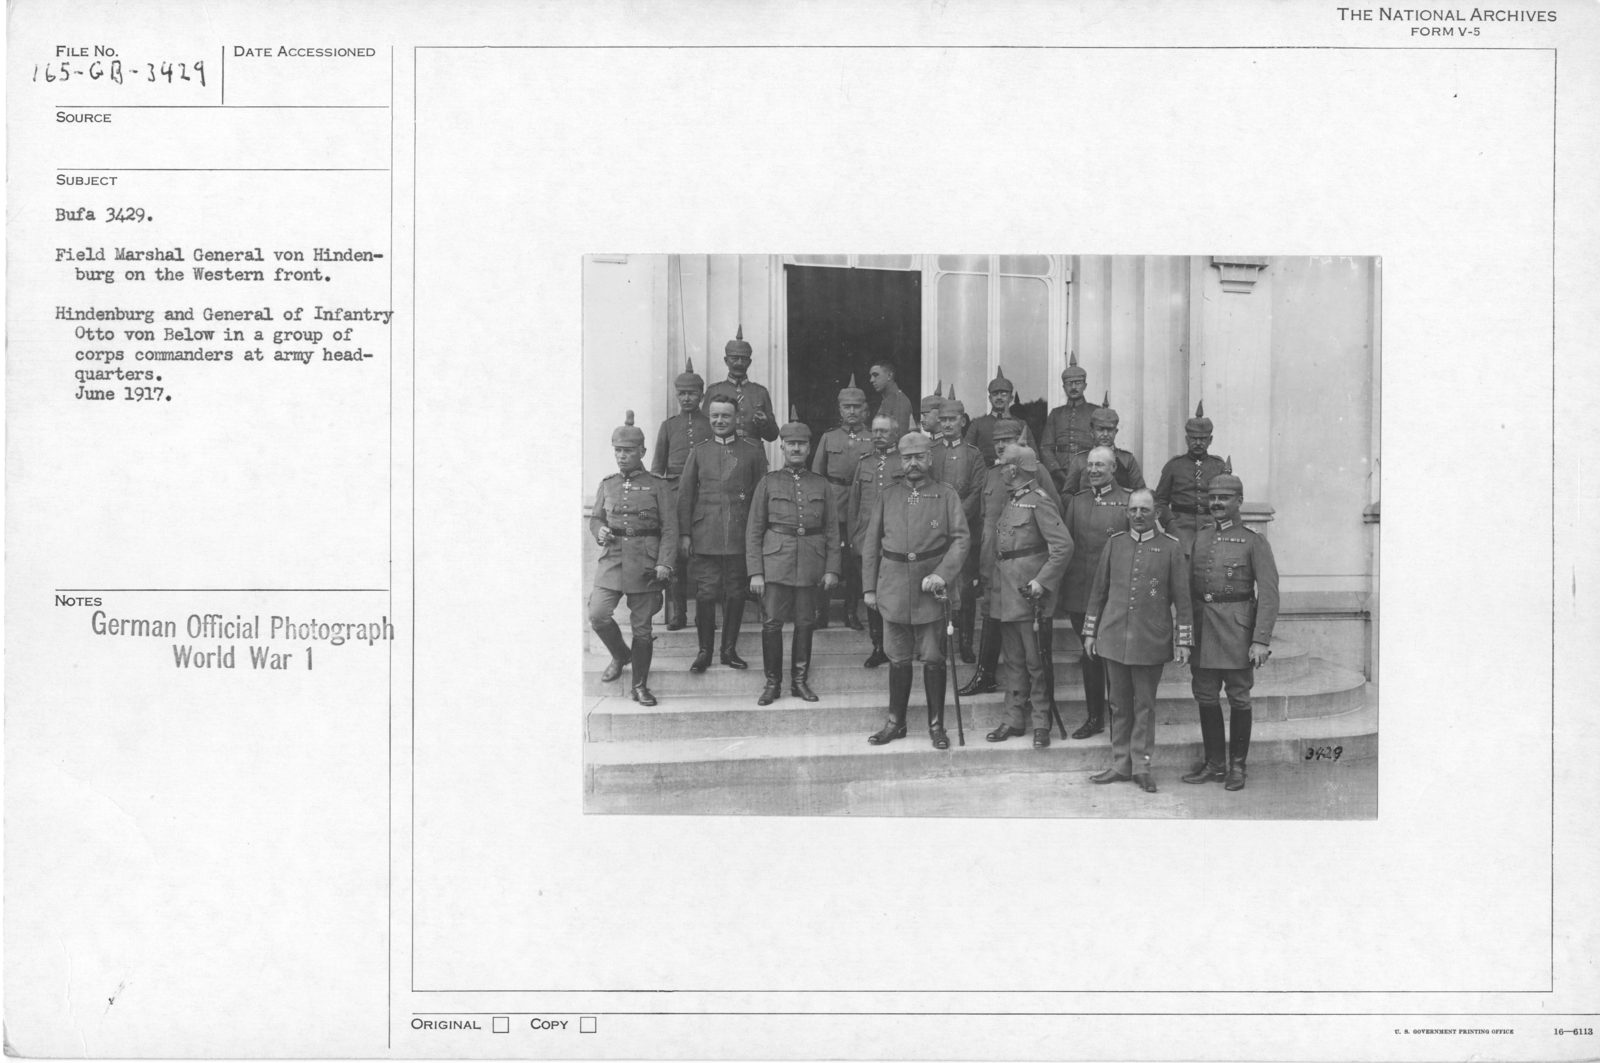 Field Marshal General von Hidenburg on the Western front. Hidenburg and General of Infantry Otto von Below in a group of corps commanders at the army headquarters. June 1917